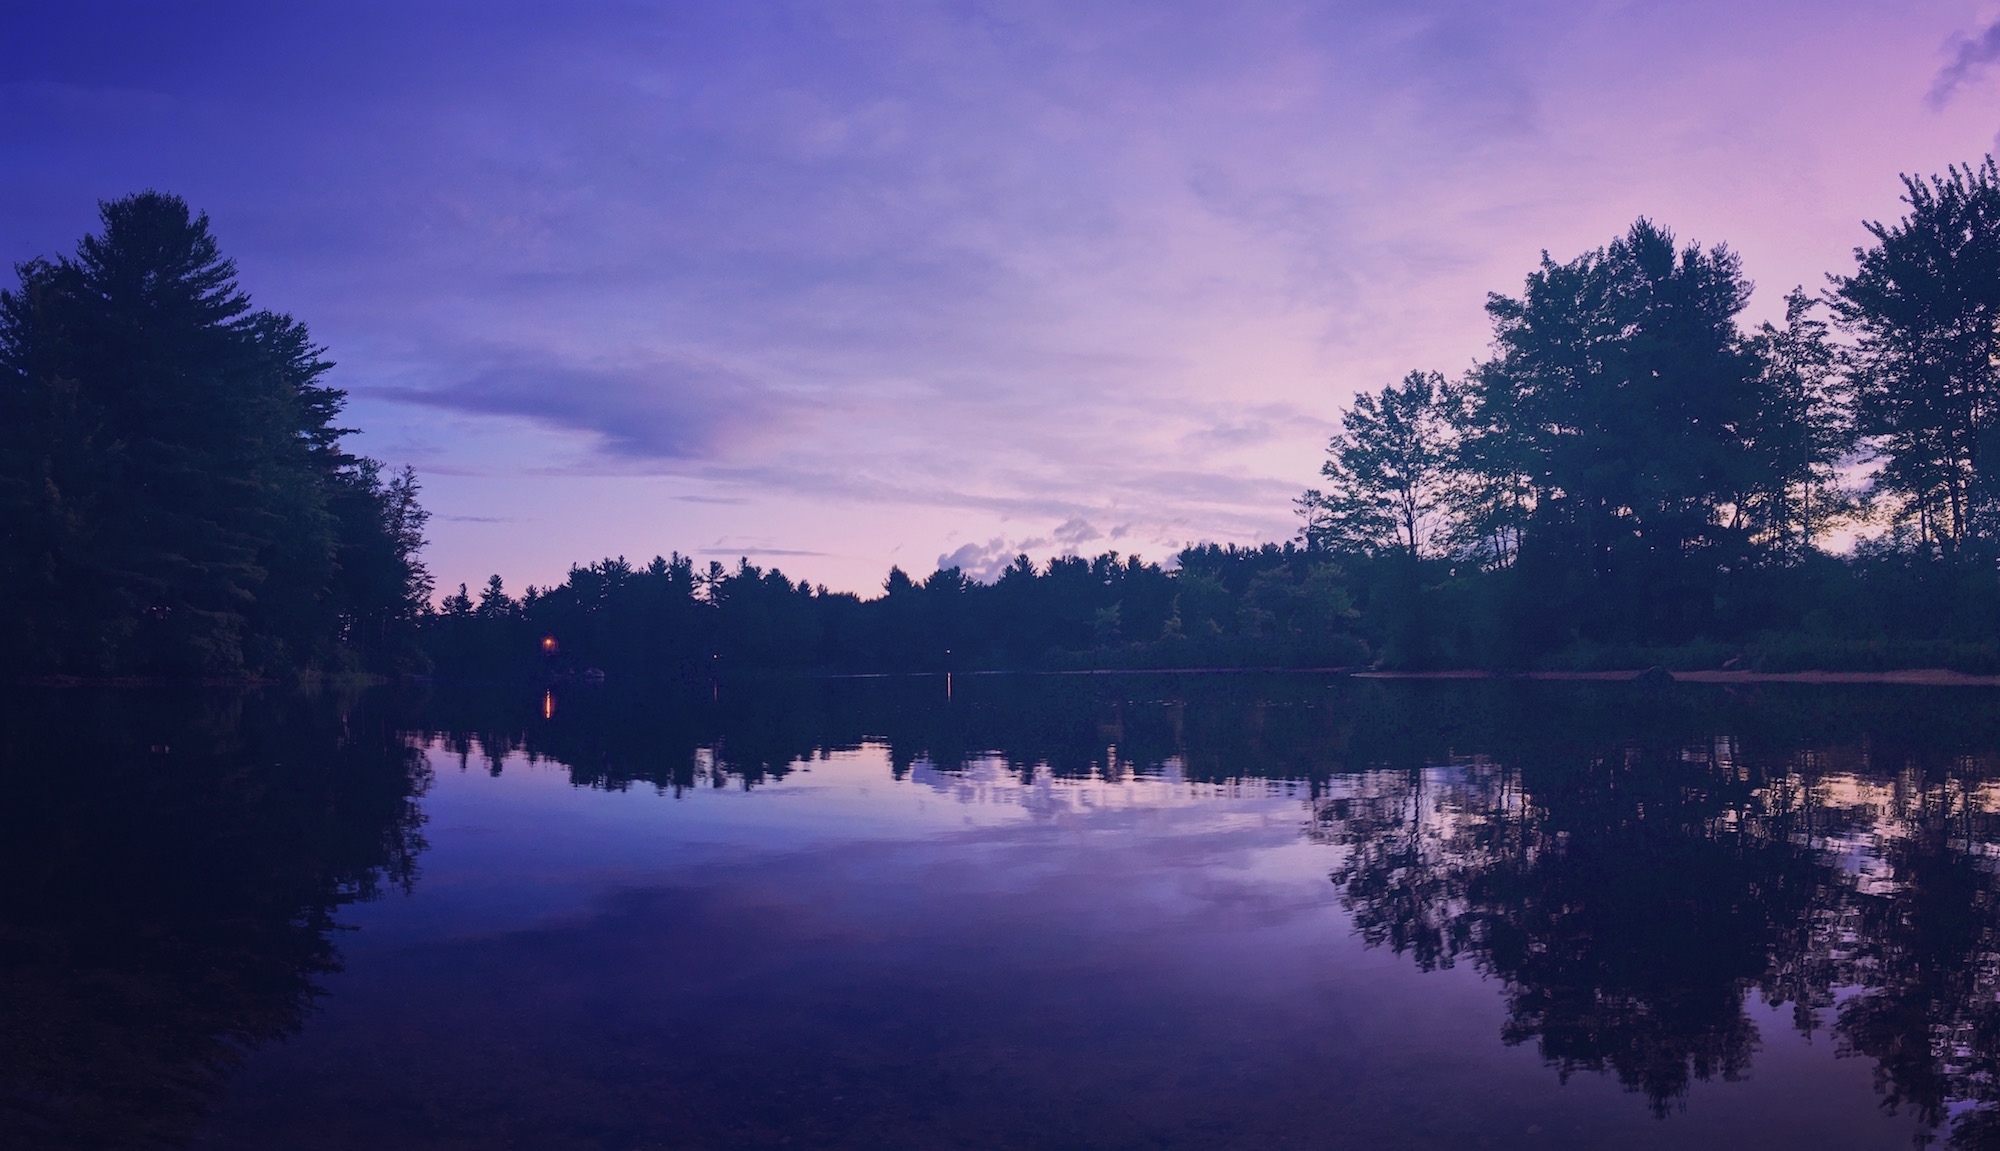 lake-uncanoonuc-morning-dawn-purple.jpeg